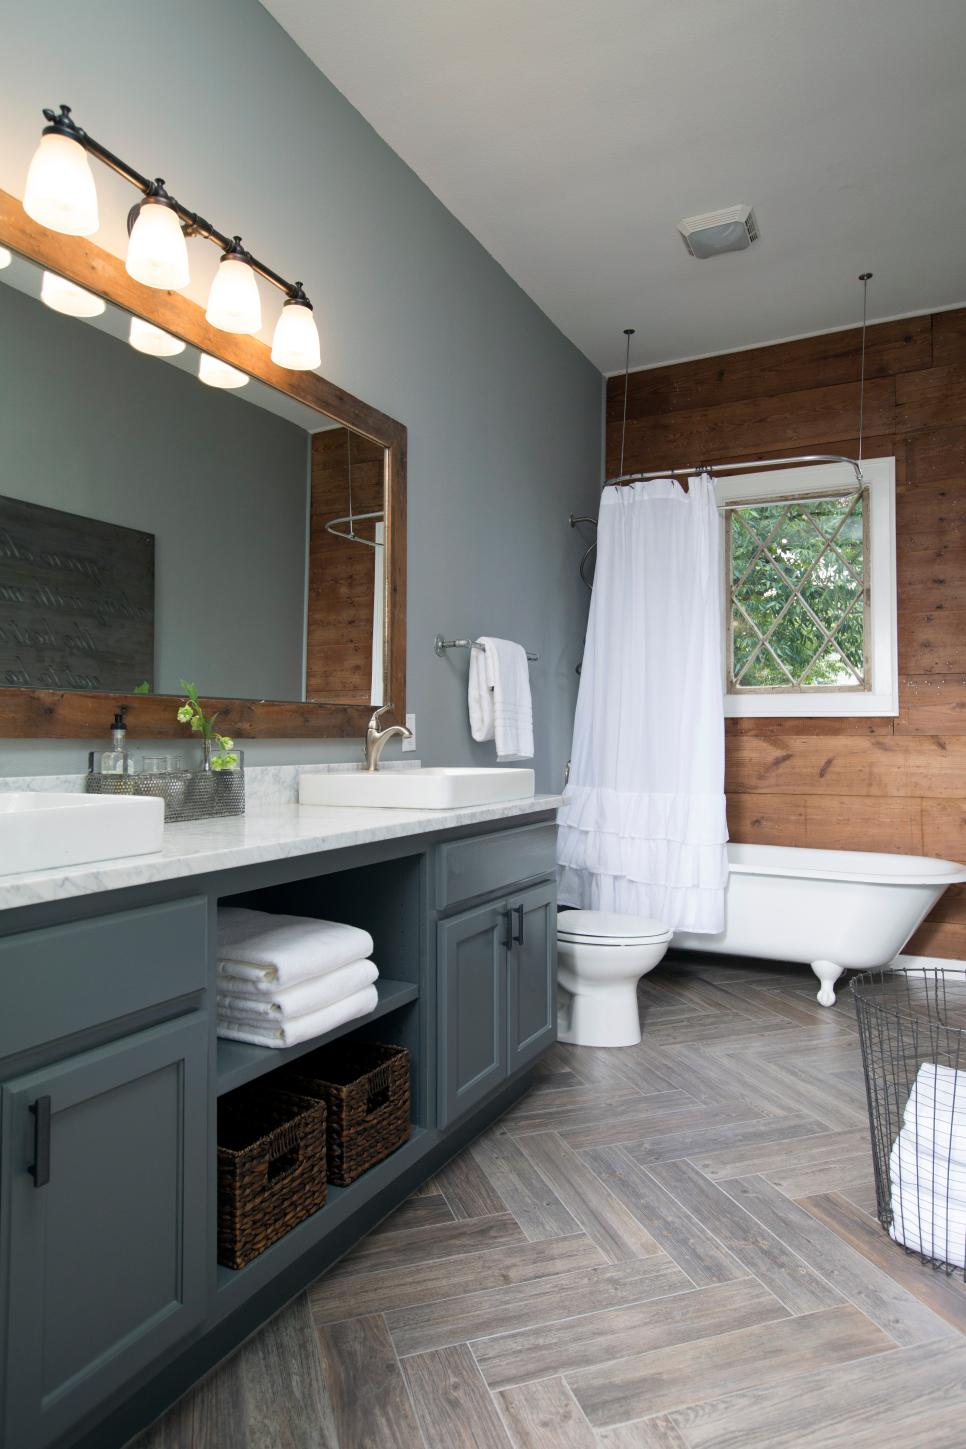 Top 10 Fixer Upper Bathrooms - Daily Dose of Style on Bathroom Models  id=29816